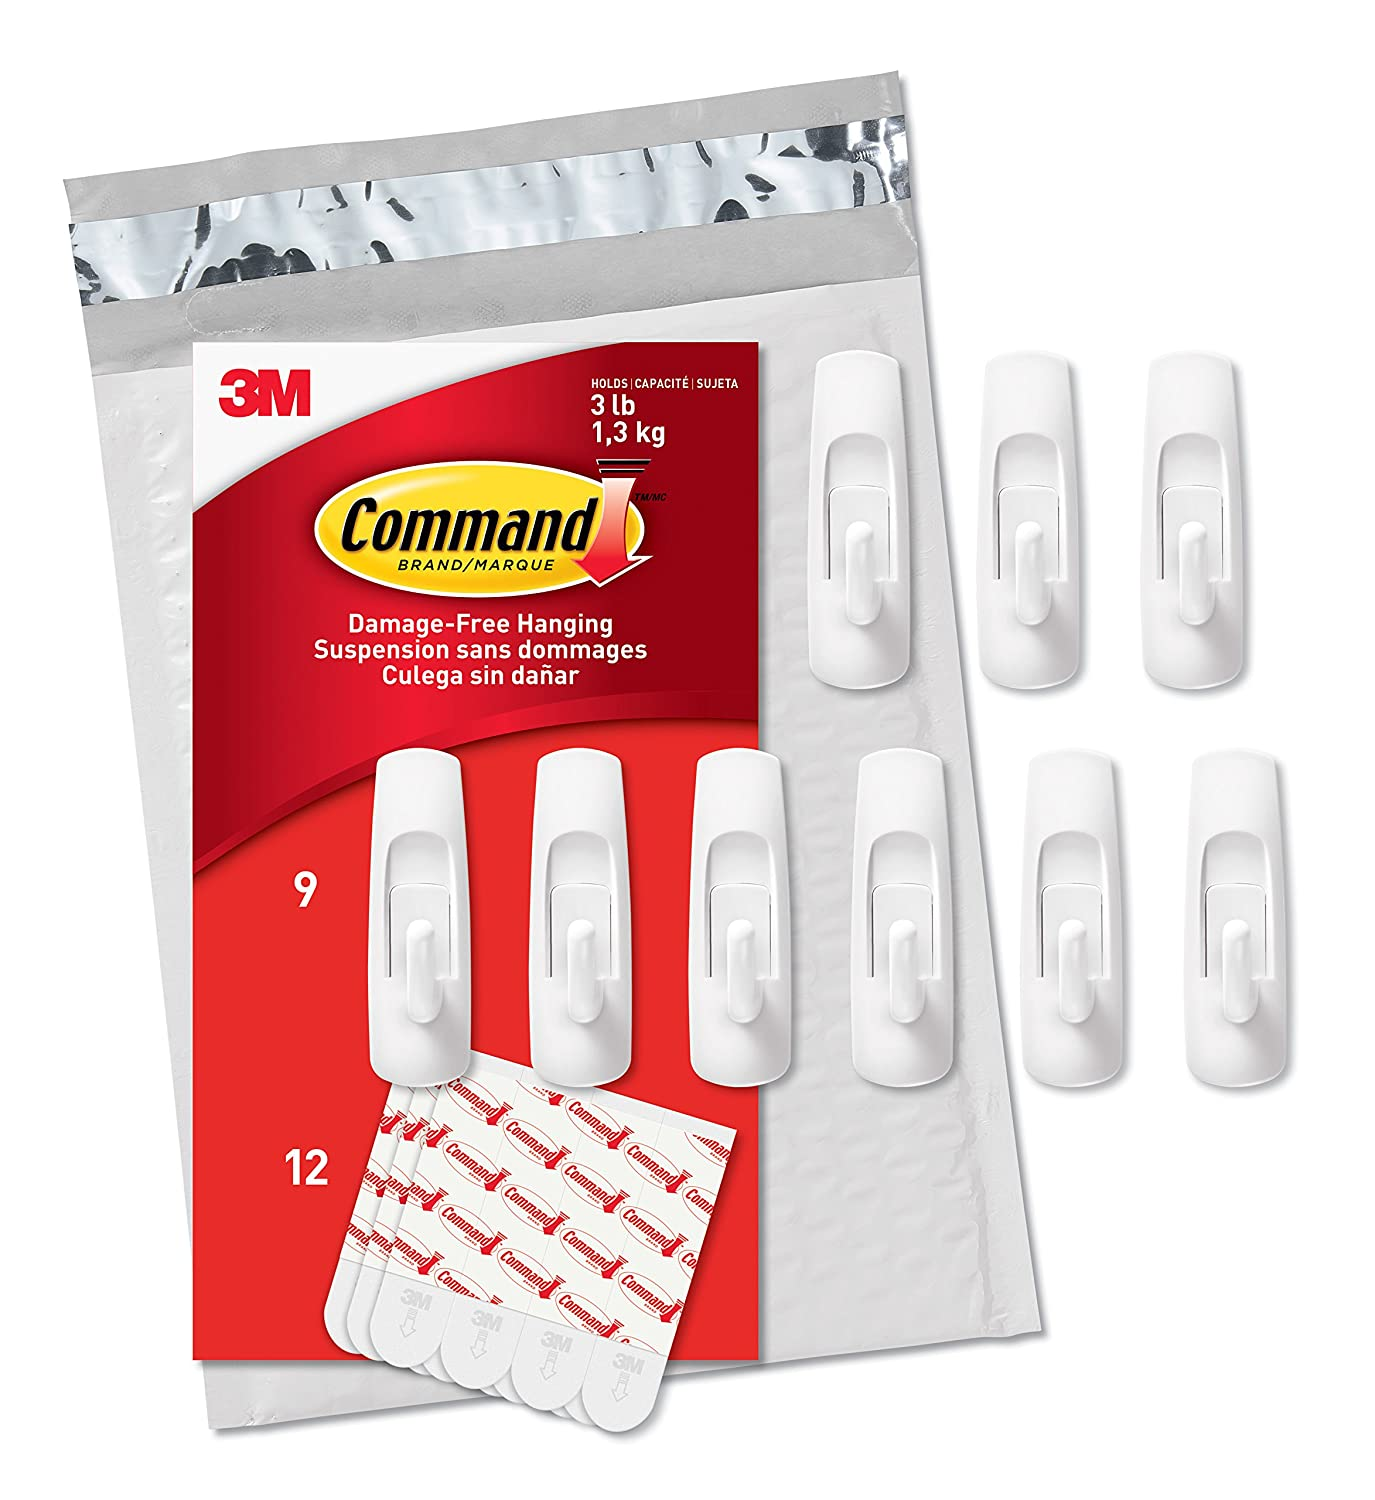 Command 3M Medium Multi Function Hooks White No Tools or Holes Strong and Versatile 9 Hooks 12 Strips